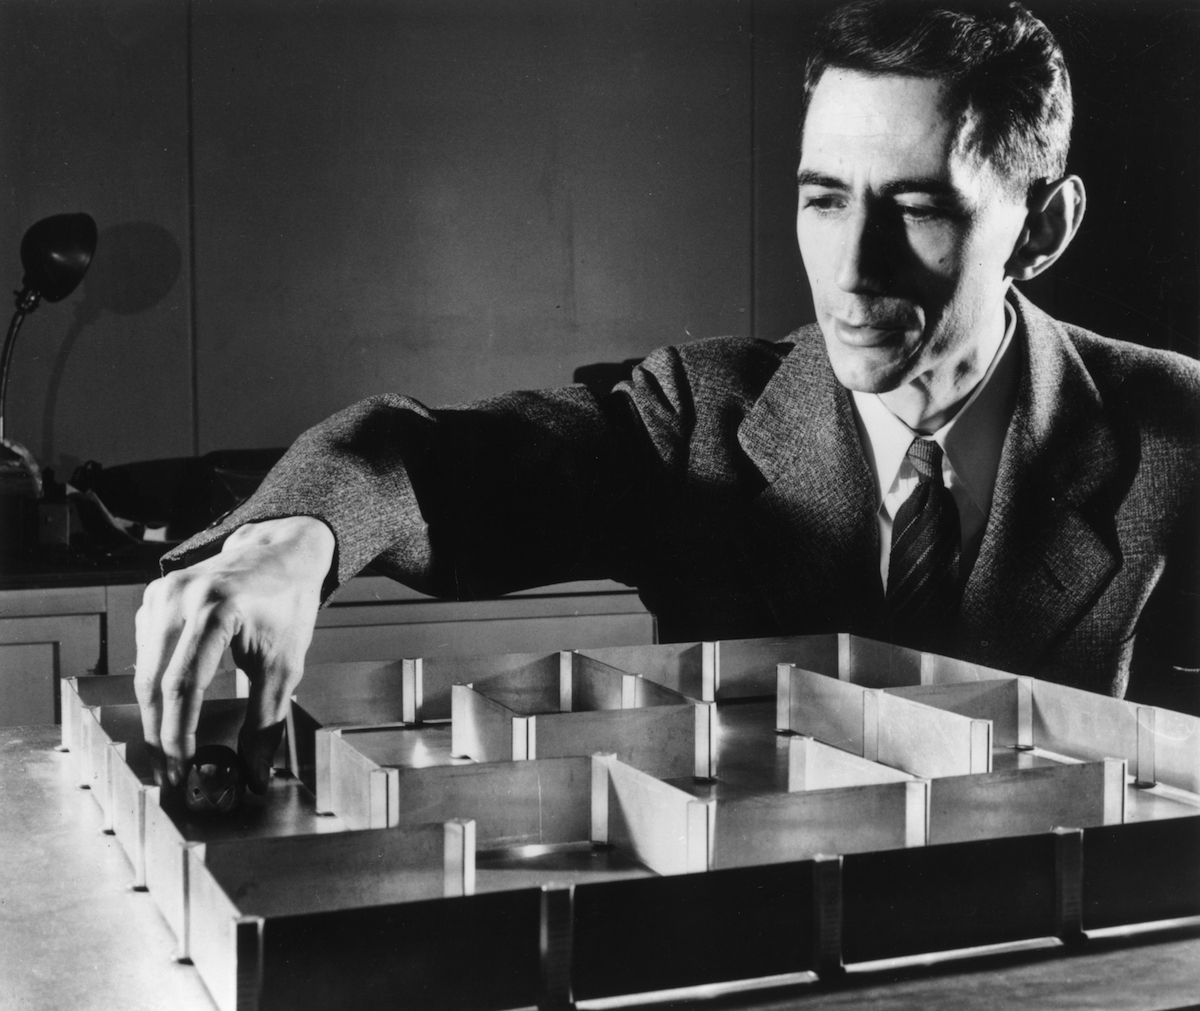 Dr. Claude E Shannon with an electronic mouse which has a 'super' memory and can learn its way round a maze without a mistake after only one 'training' run, on May 10, 1952